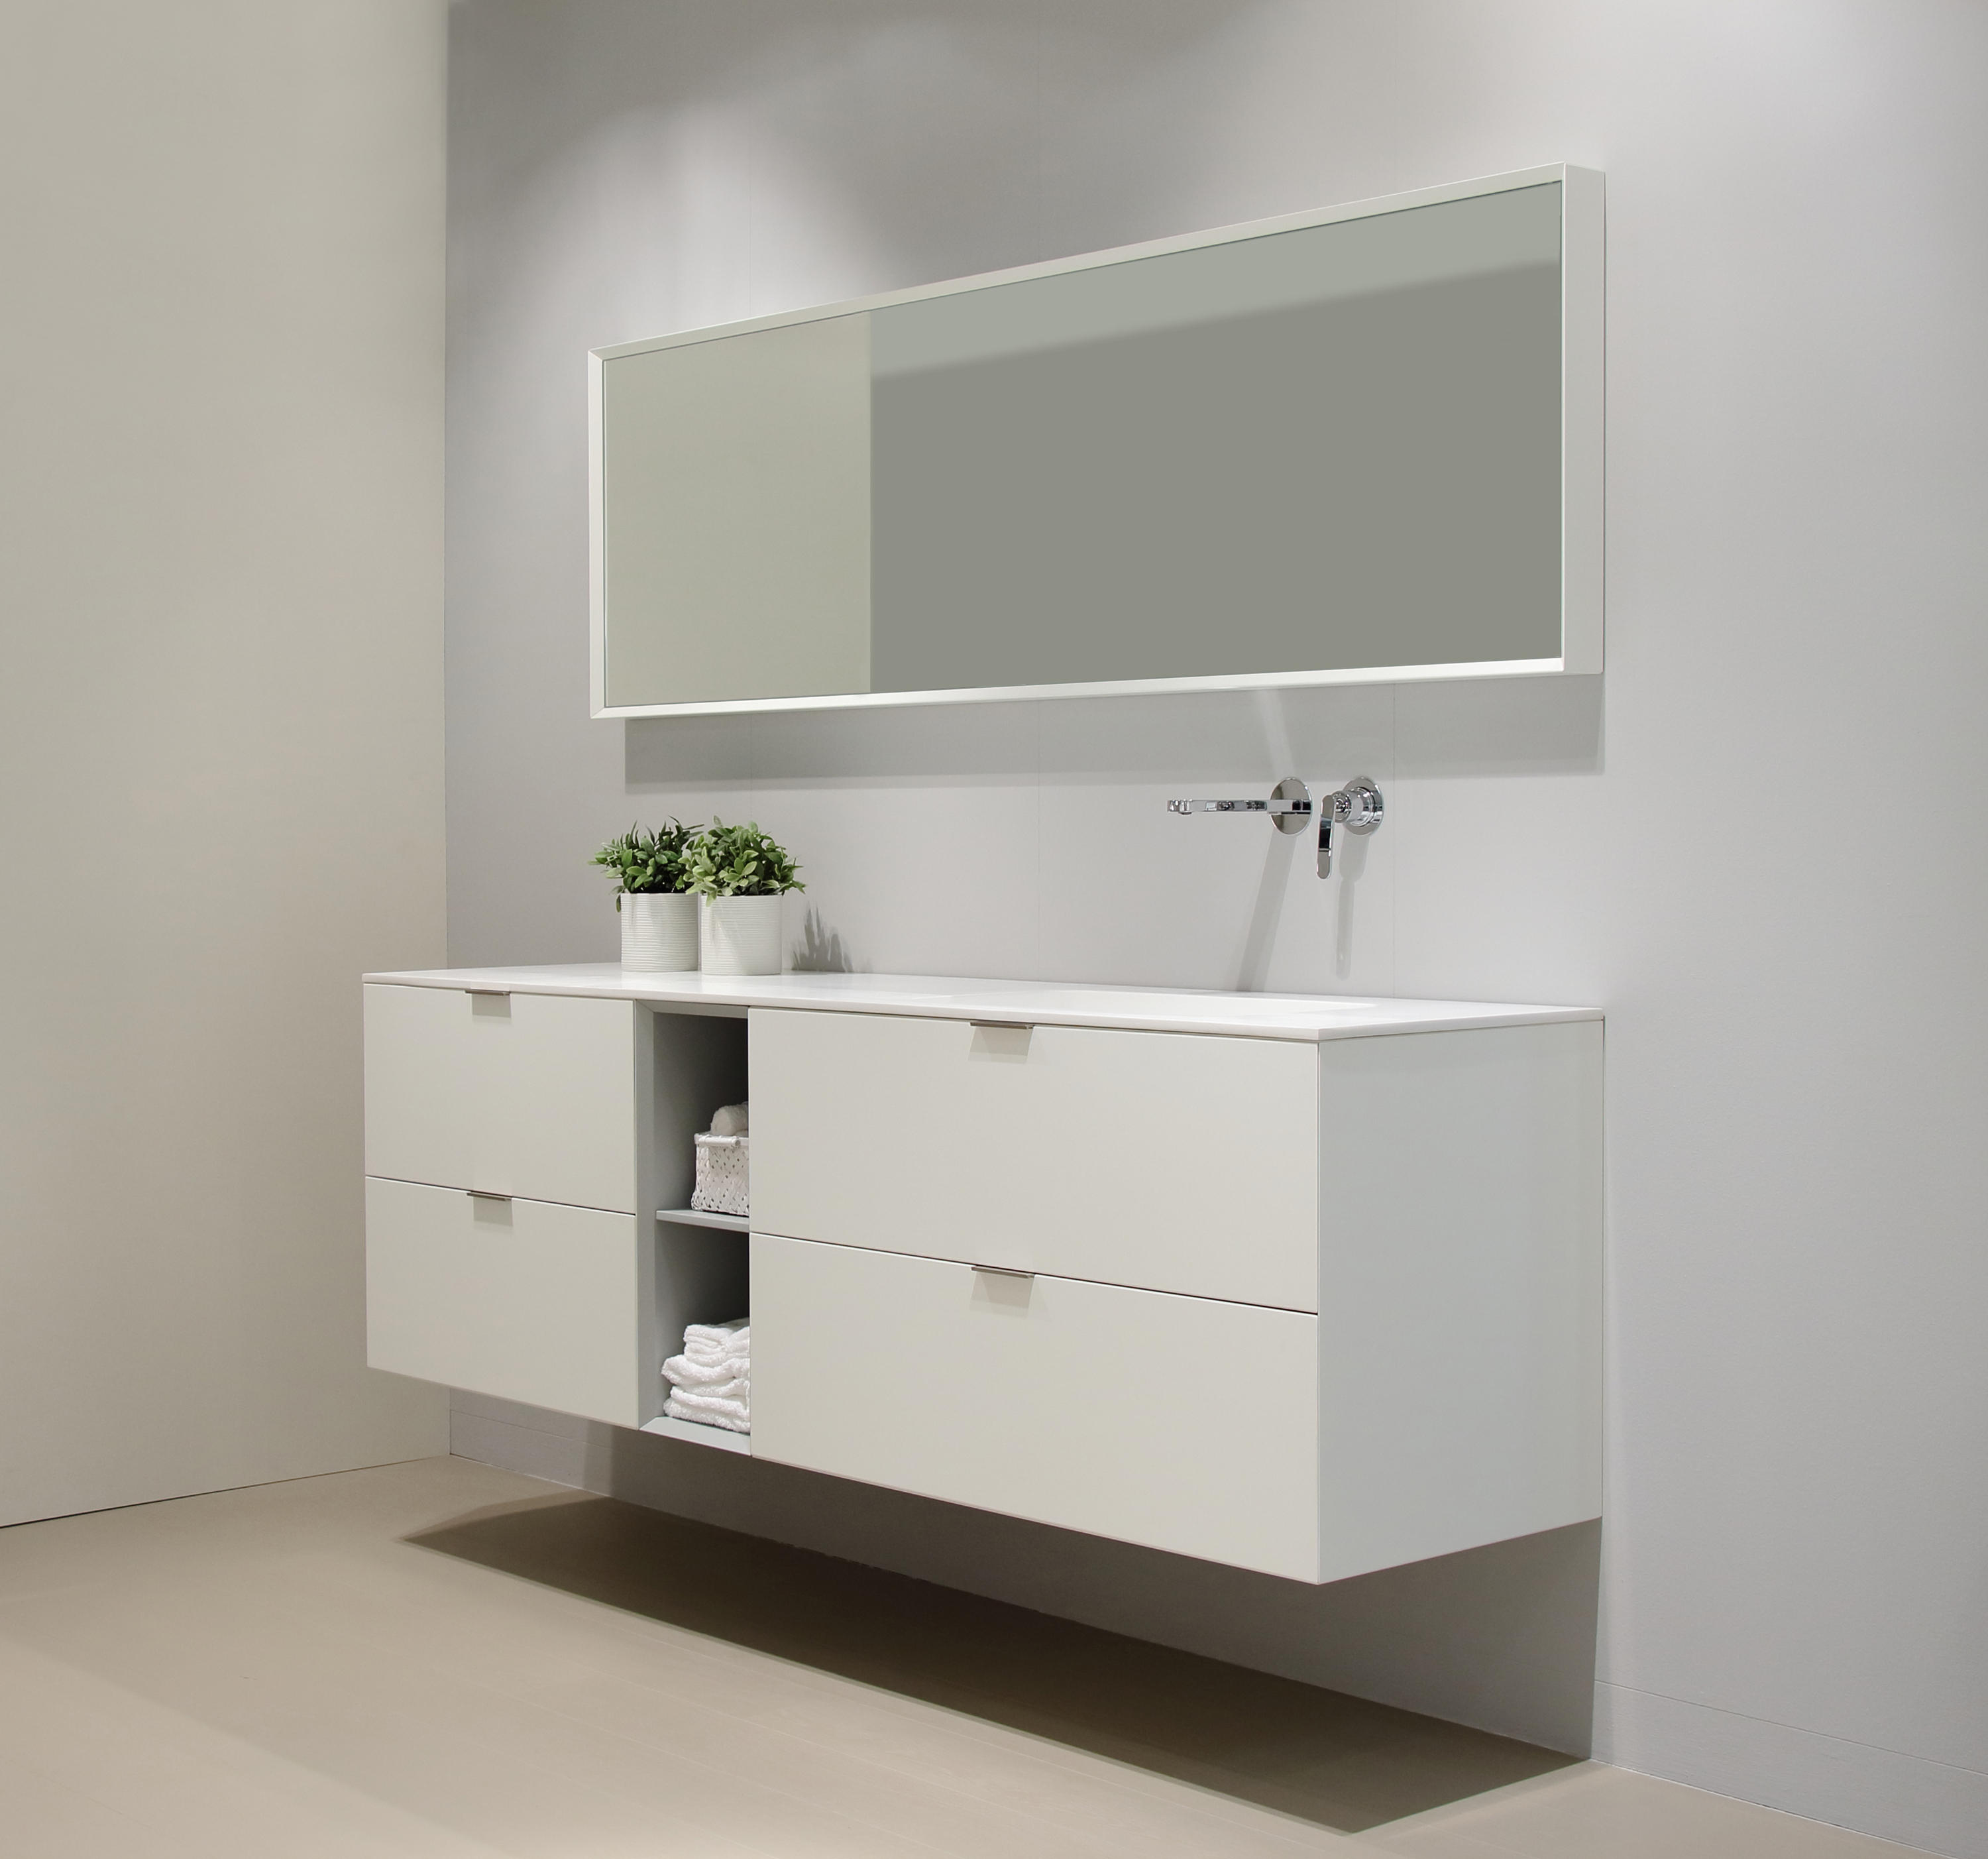 Lush cream wall mirrors from dica architonic for Spiegelkasten badezimmer